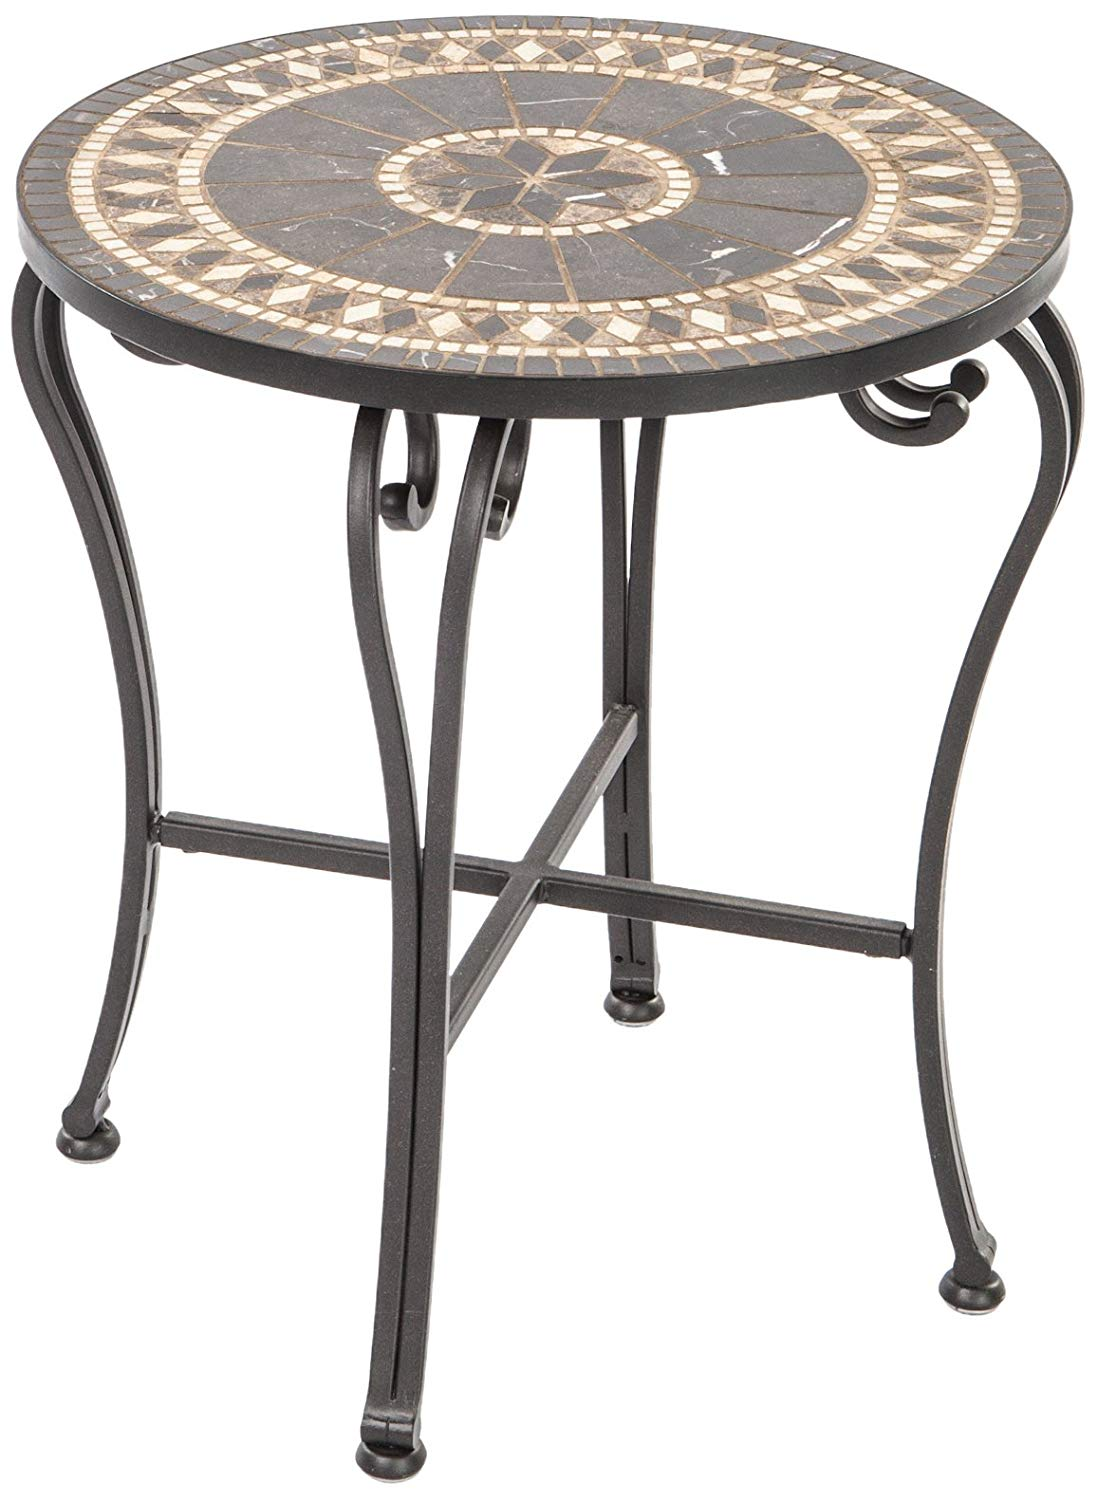 alfresco home indoor outdoor marble mosaic round patio accent table side tables garden mini chest drawers wicker chair west elm coffee desk iron chairs kitchen diner wood slim